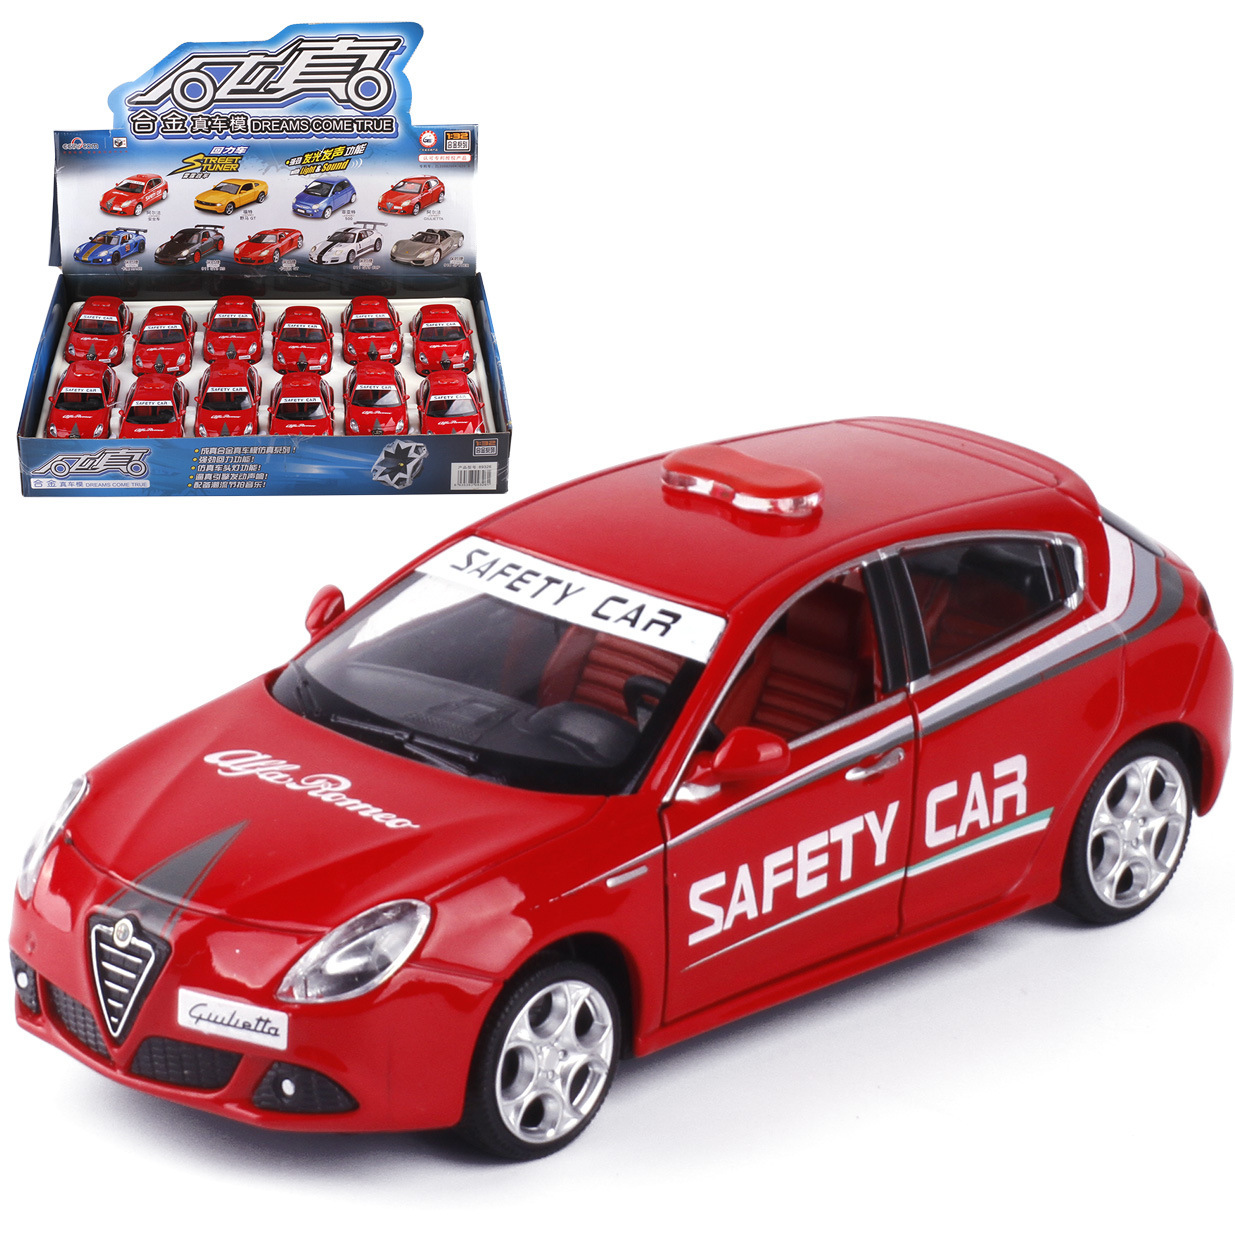 1:32 High Simulation Alfa Romeo Safety Car Police Car Model Alloy Sound And Light Pull Back Car Toys For Children Gifts